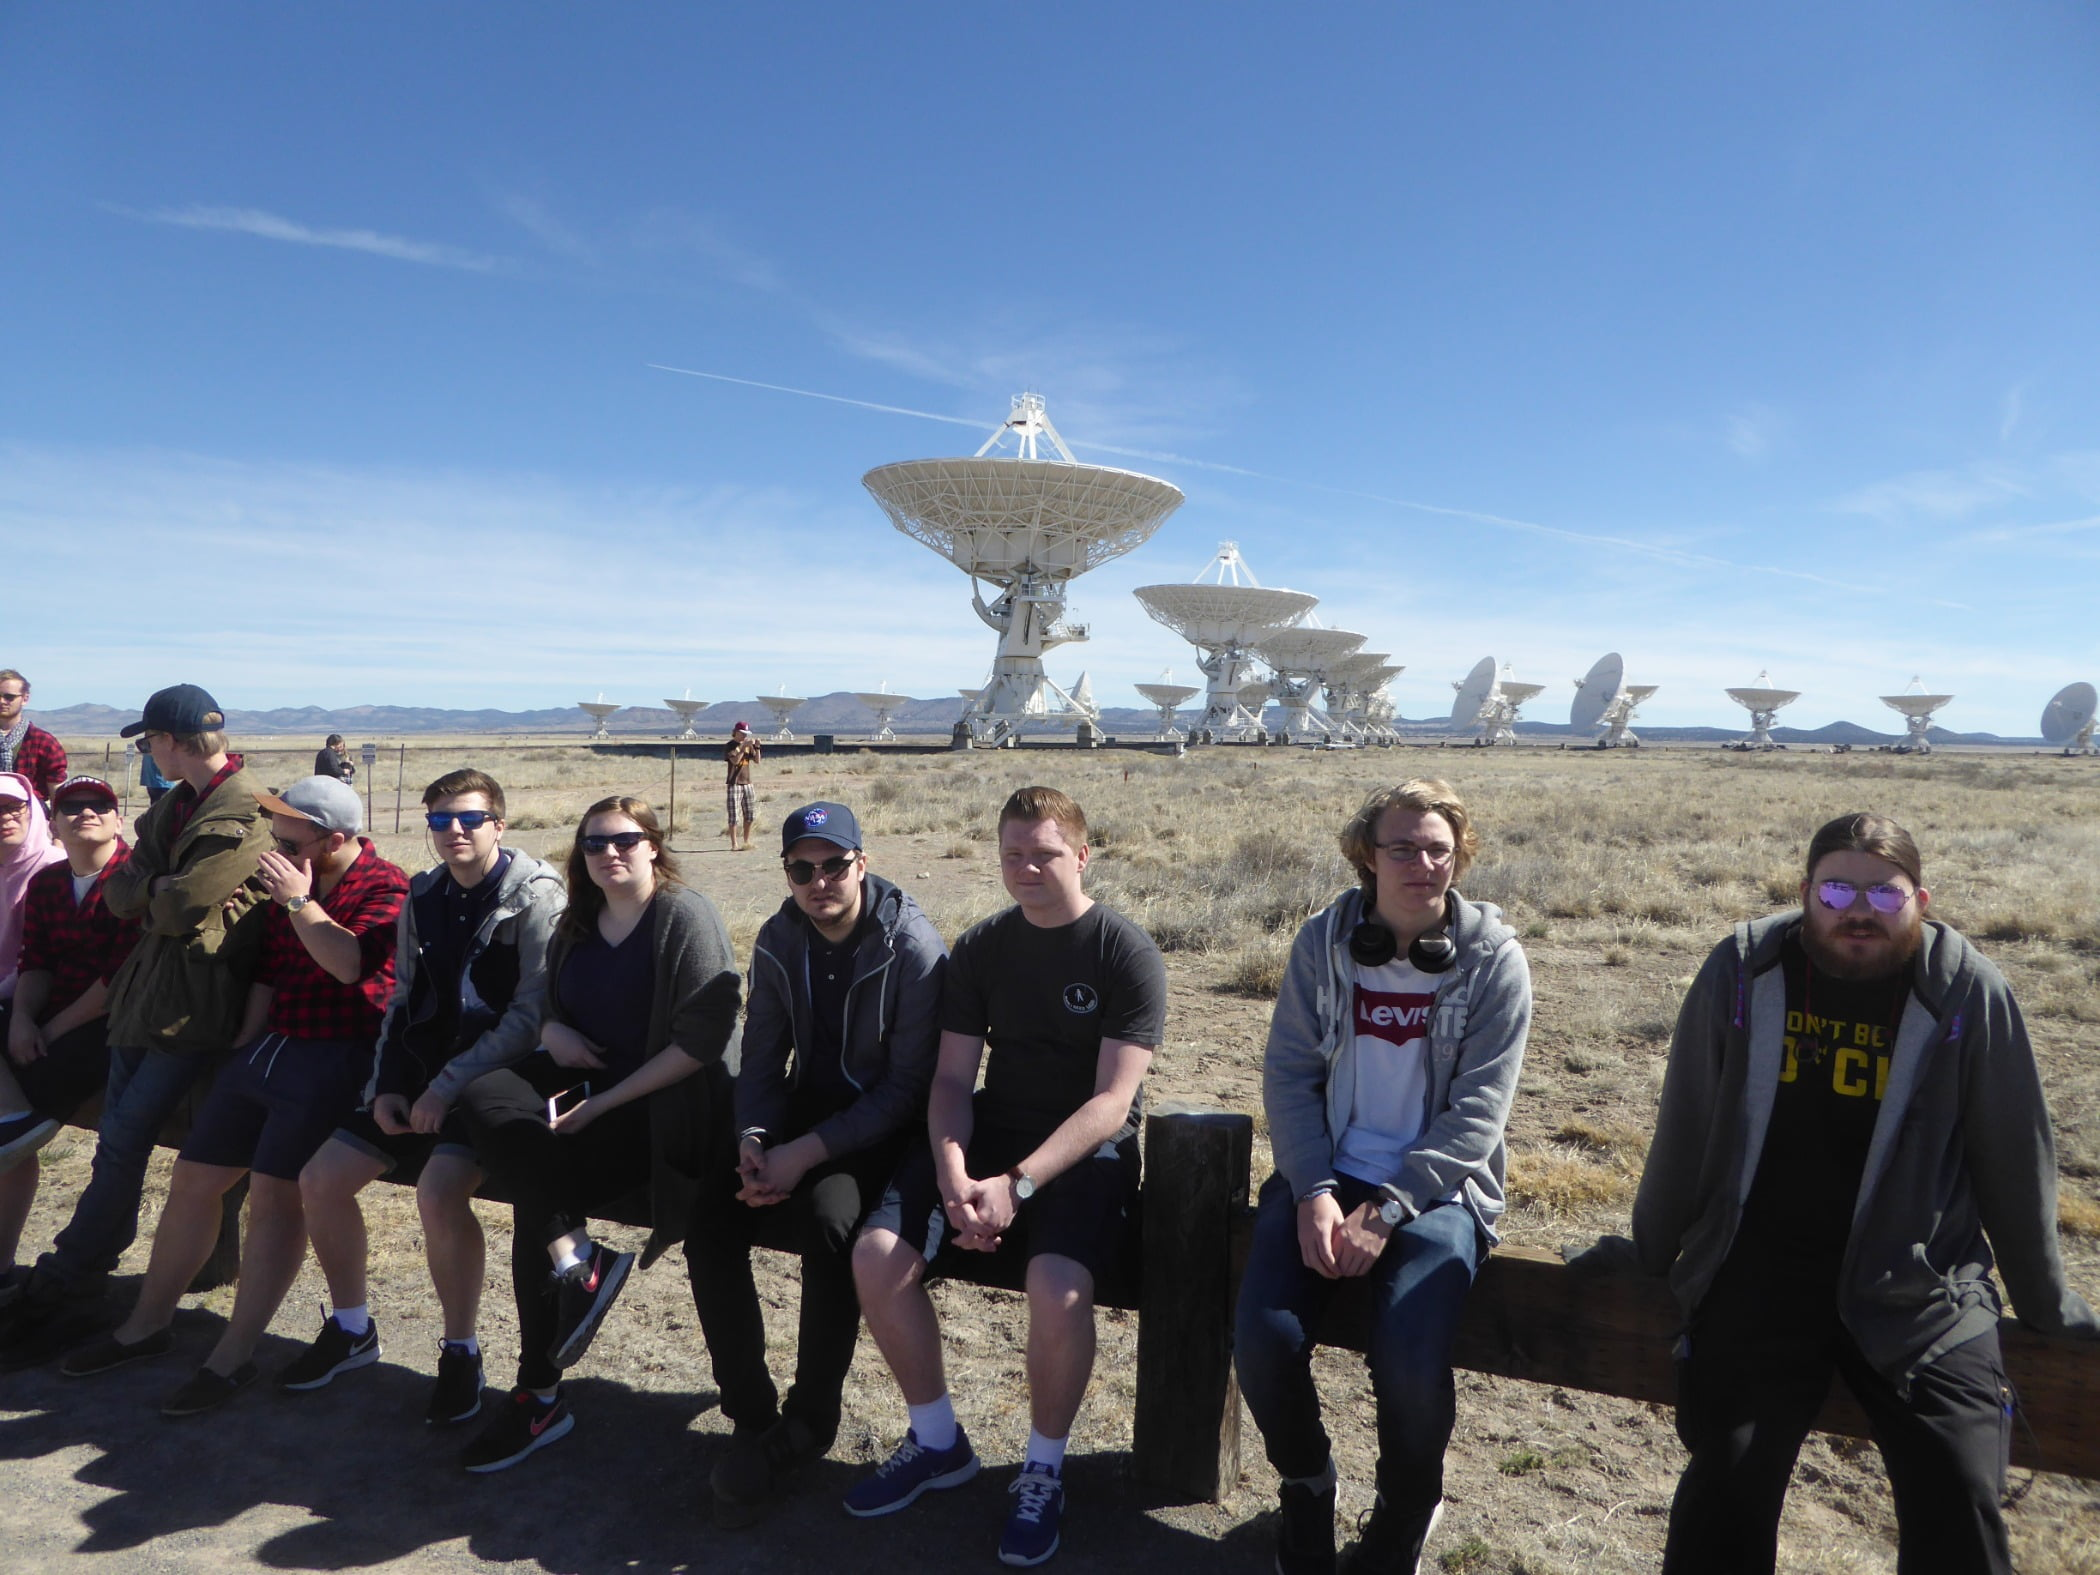 Radio telescope, Telecommunications engineering, Social group, Technology, Antenna, Travel, Tourism